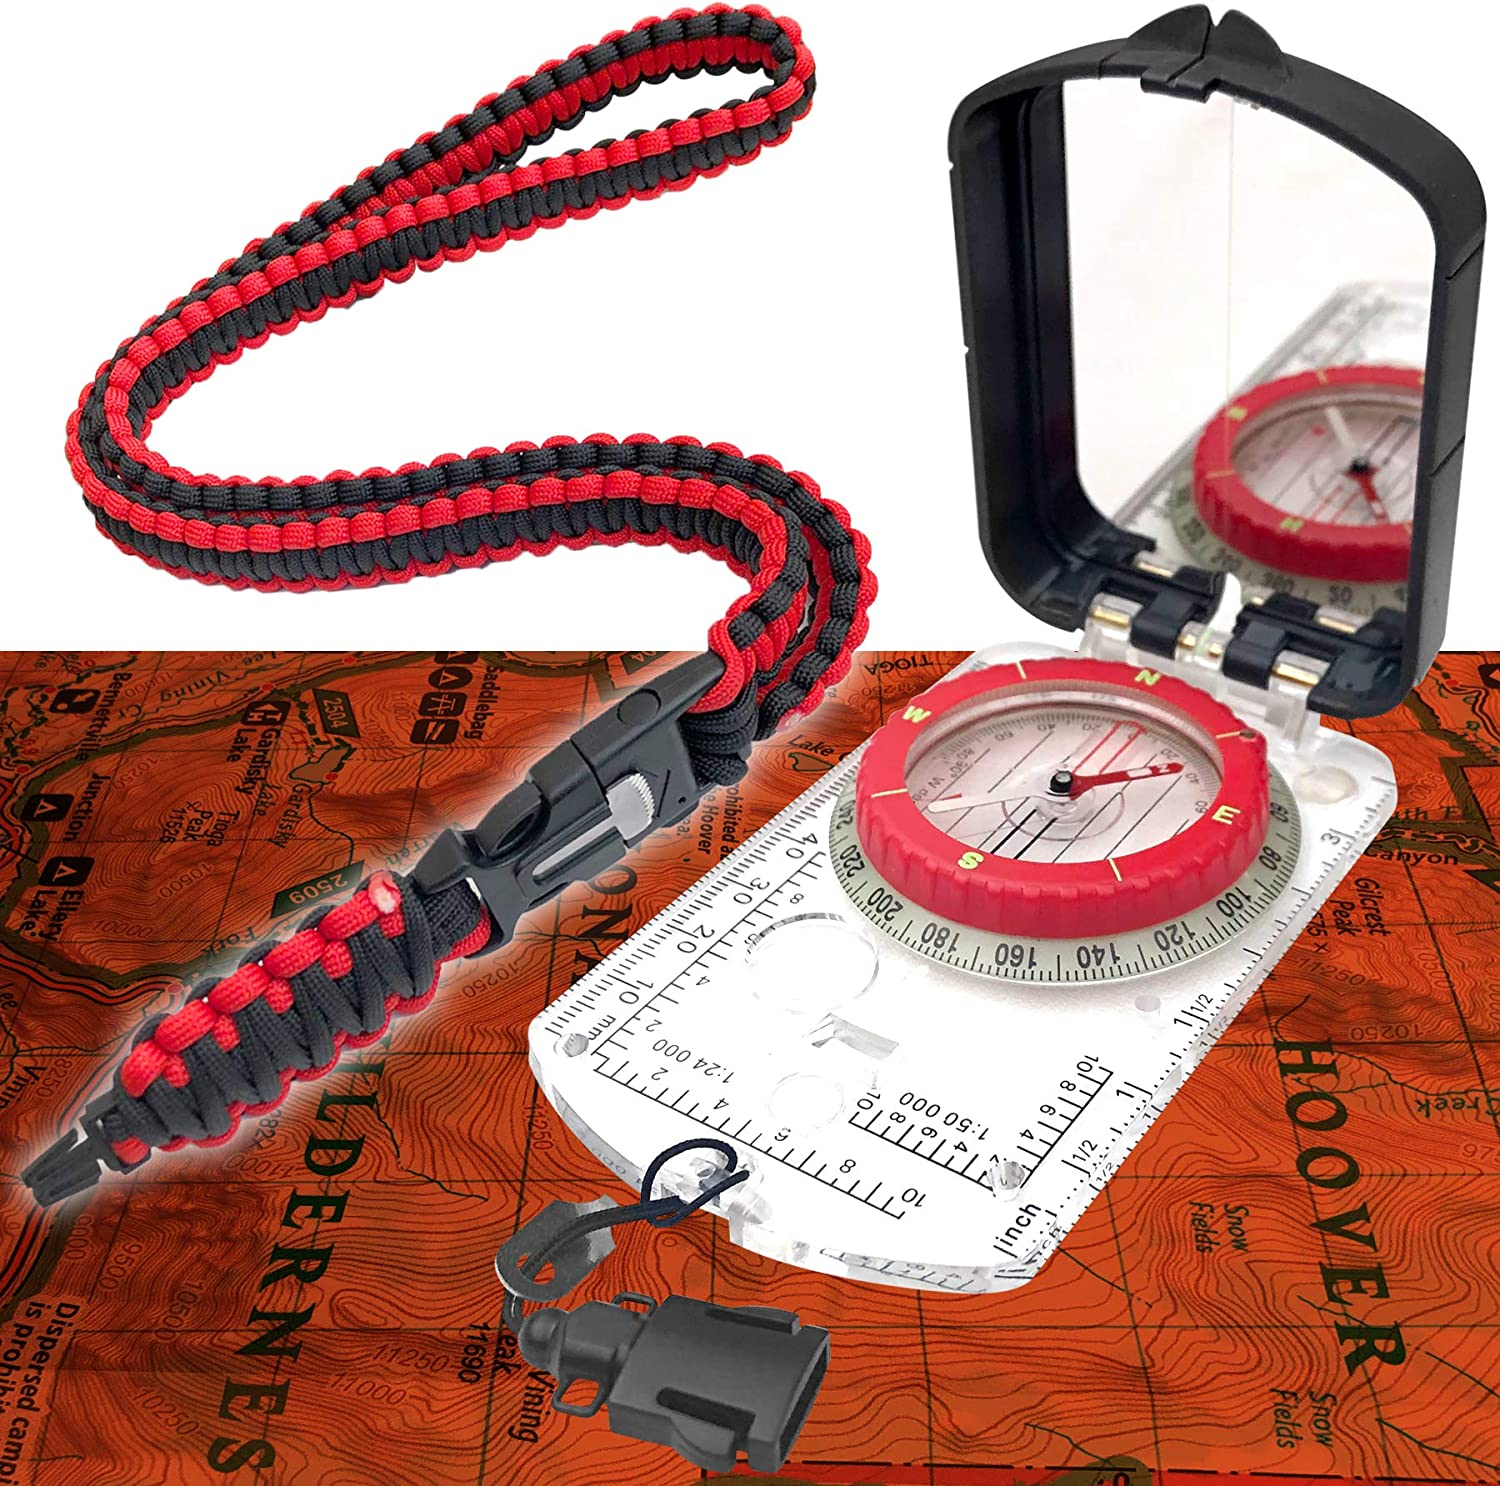 Handheld Orienteering Baseplate Compass for Hiking Backpacking Sun Company Sighting Map Compass with Adjustable Declination and Survival Navigation